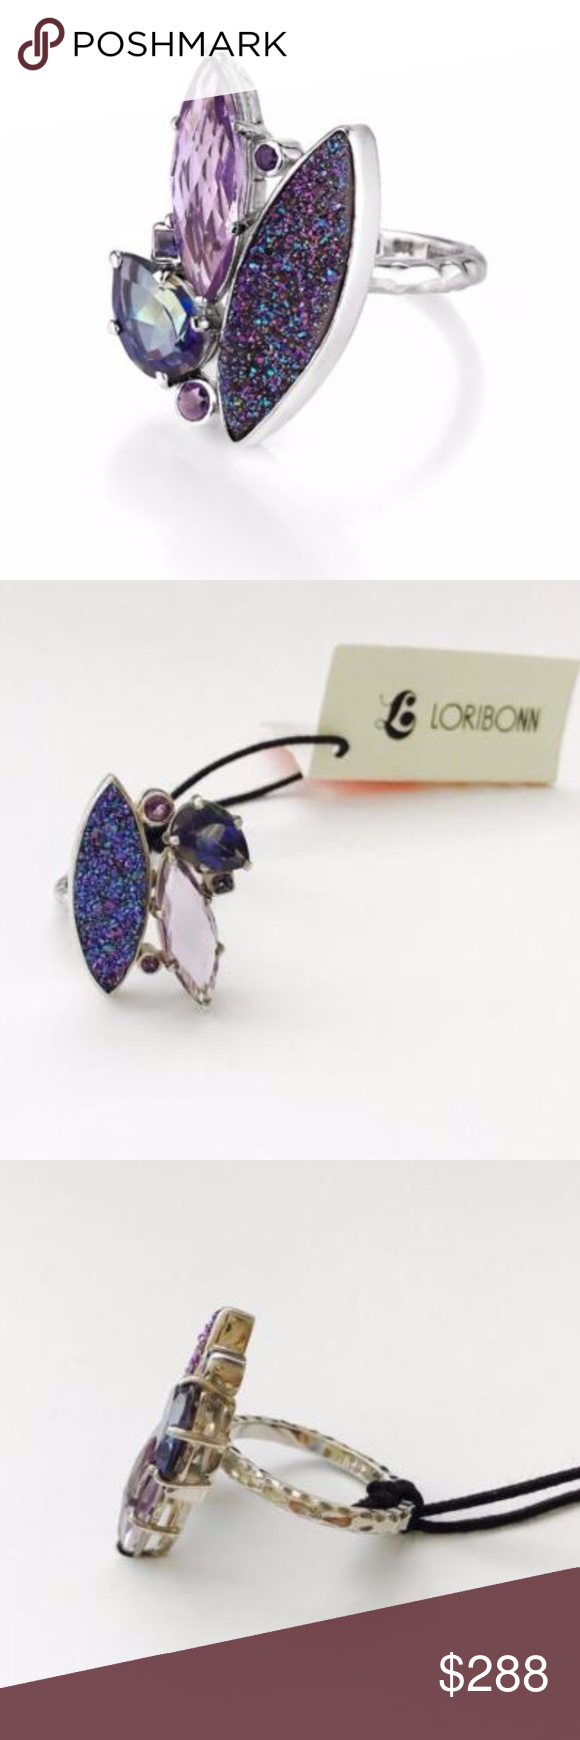 Lori Bonn Sterling Silver Pizzazz Cluster Ring 9 STERLING SILVER ASSORTED BLUE DRUZY, AMETHYST, MYSTIC FIRE QUARTZ AND IOLITE CLUSTER RING APPROX. 28MM L X 20MM W RING FACE IMPORTED CARE: WIPE WITH A SOFT POLISHING CLOTH Lori Bonn Jewelry Rings